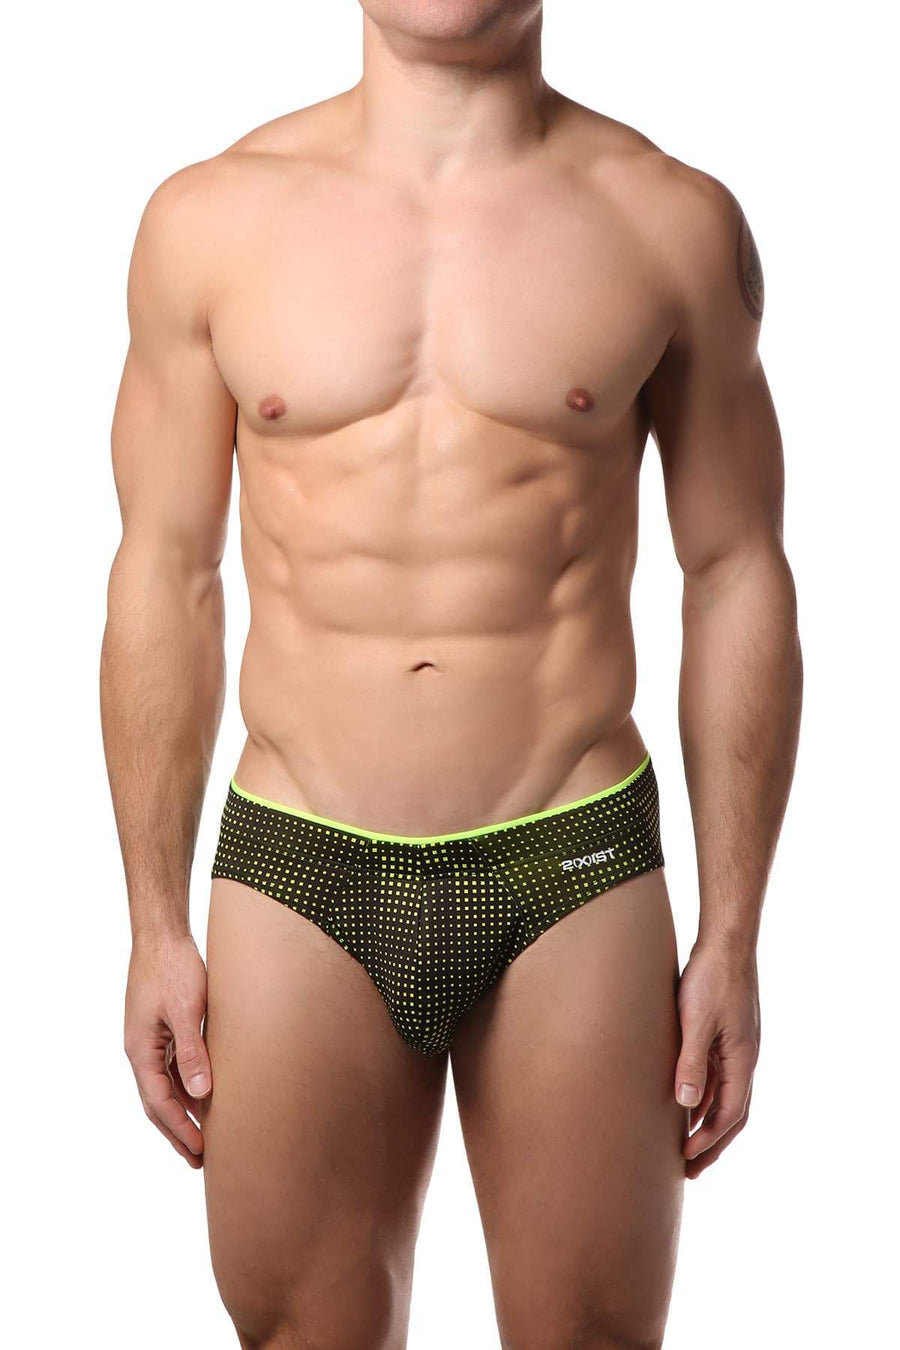 Briefs - 2(X)IST Black & Neon Yellow Sliq Brief -   jetcube